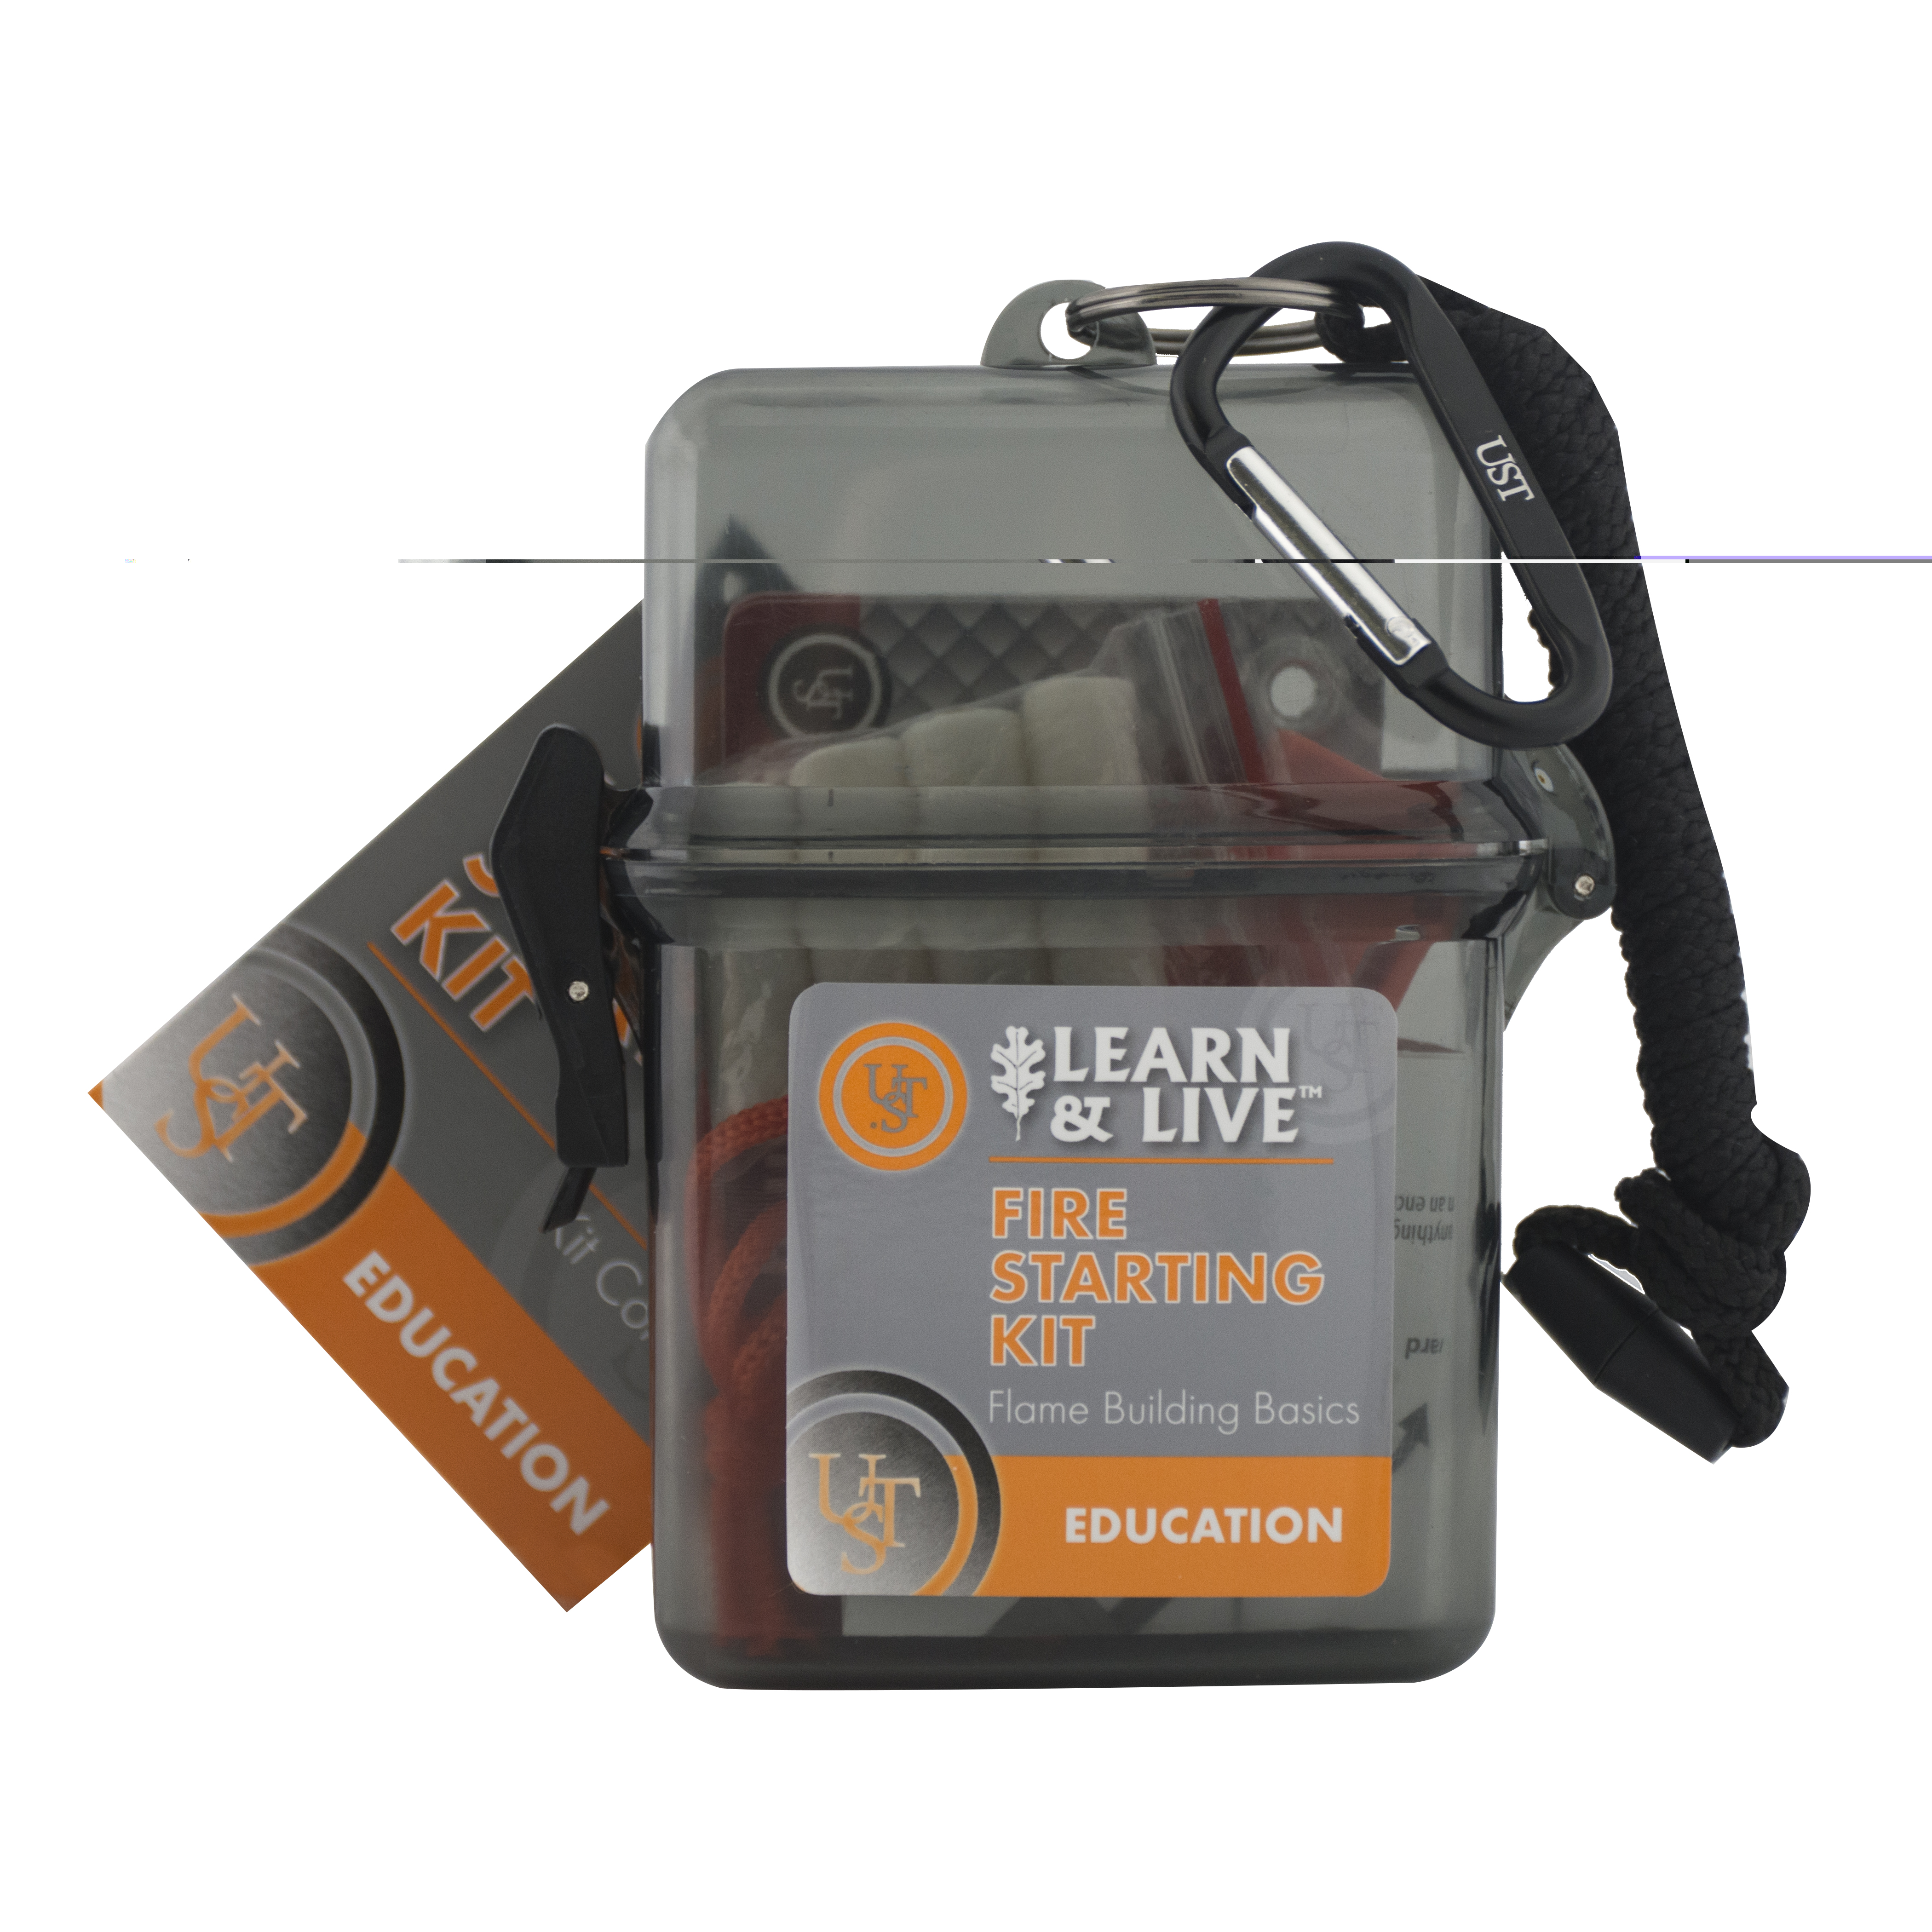 20-02760 - UST Brands Learn & Live Kit - Fire Starting Hang Sleeve